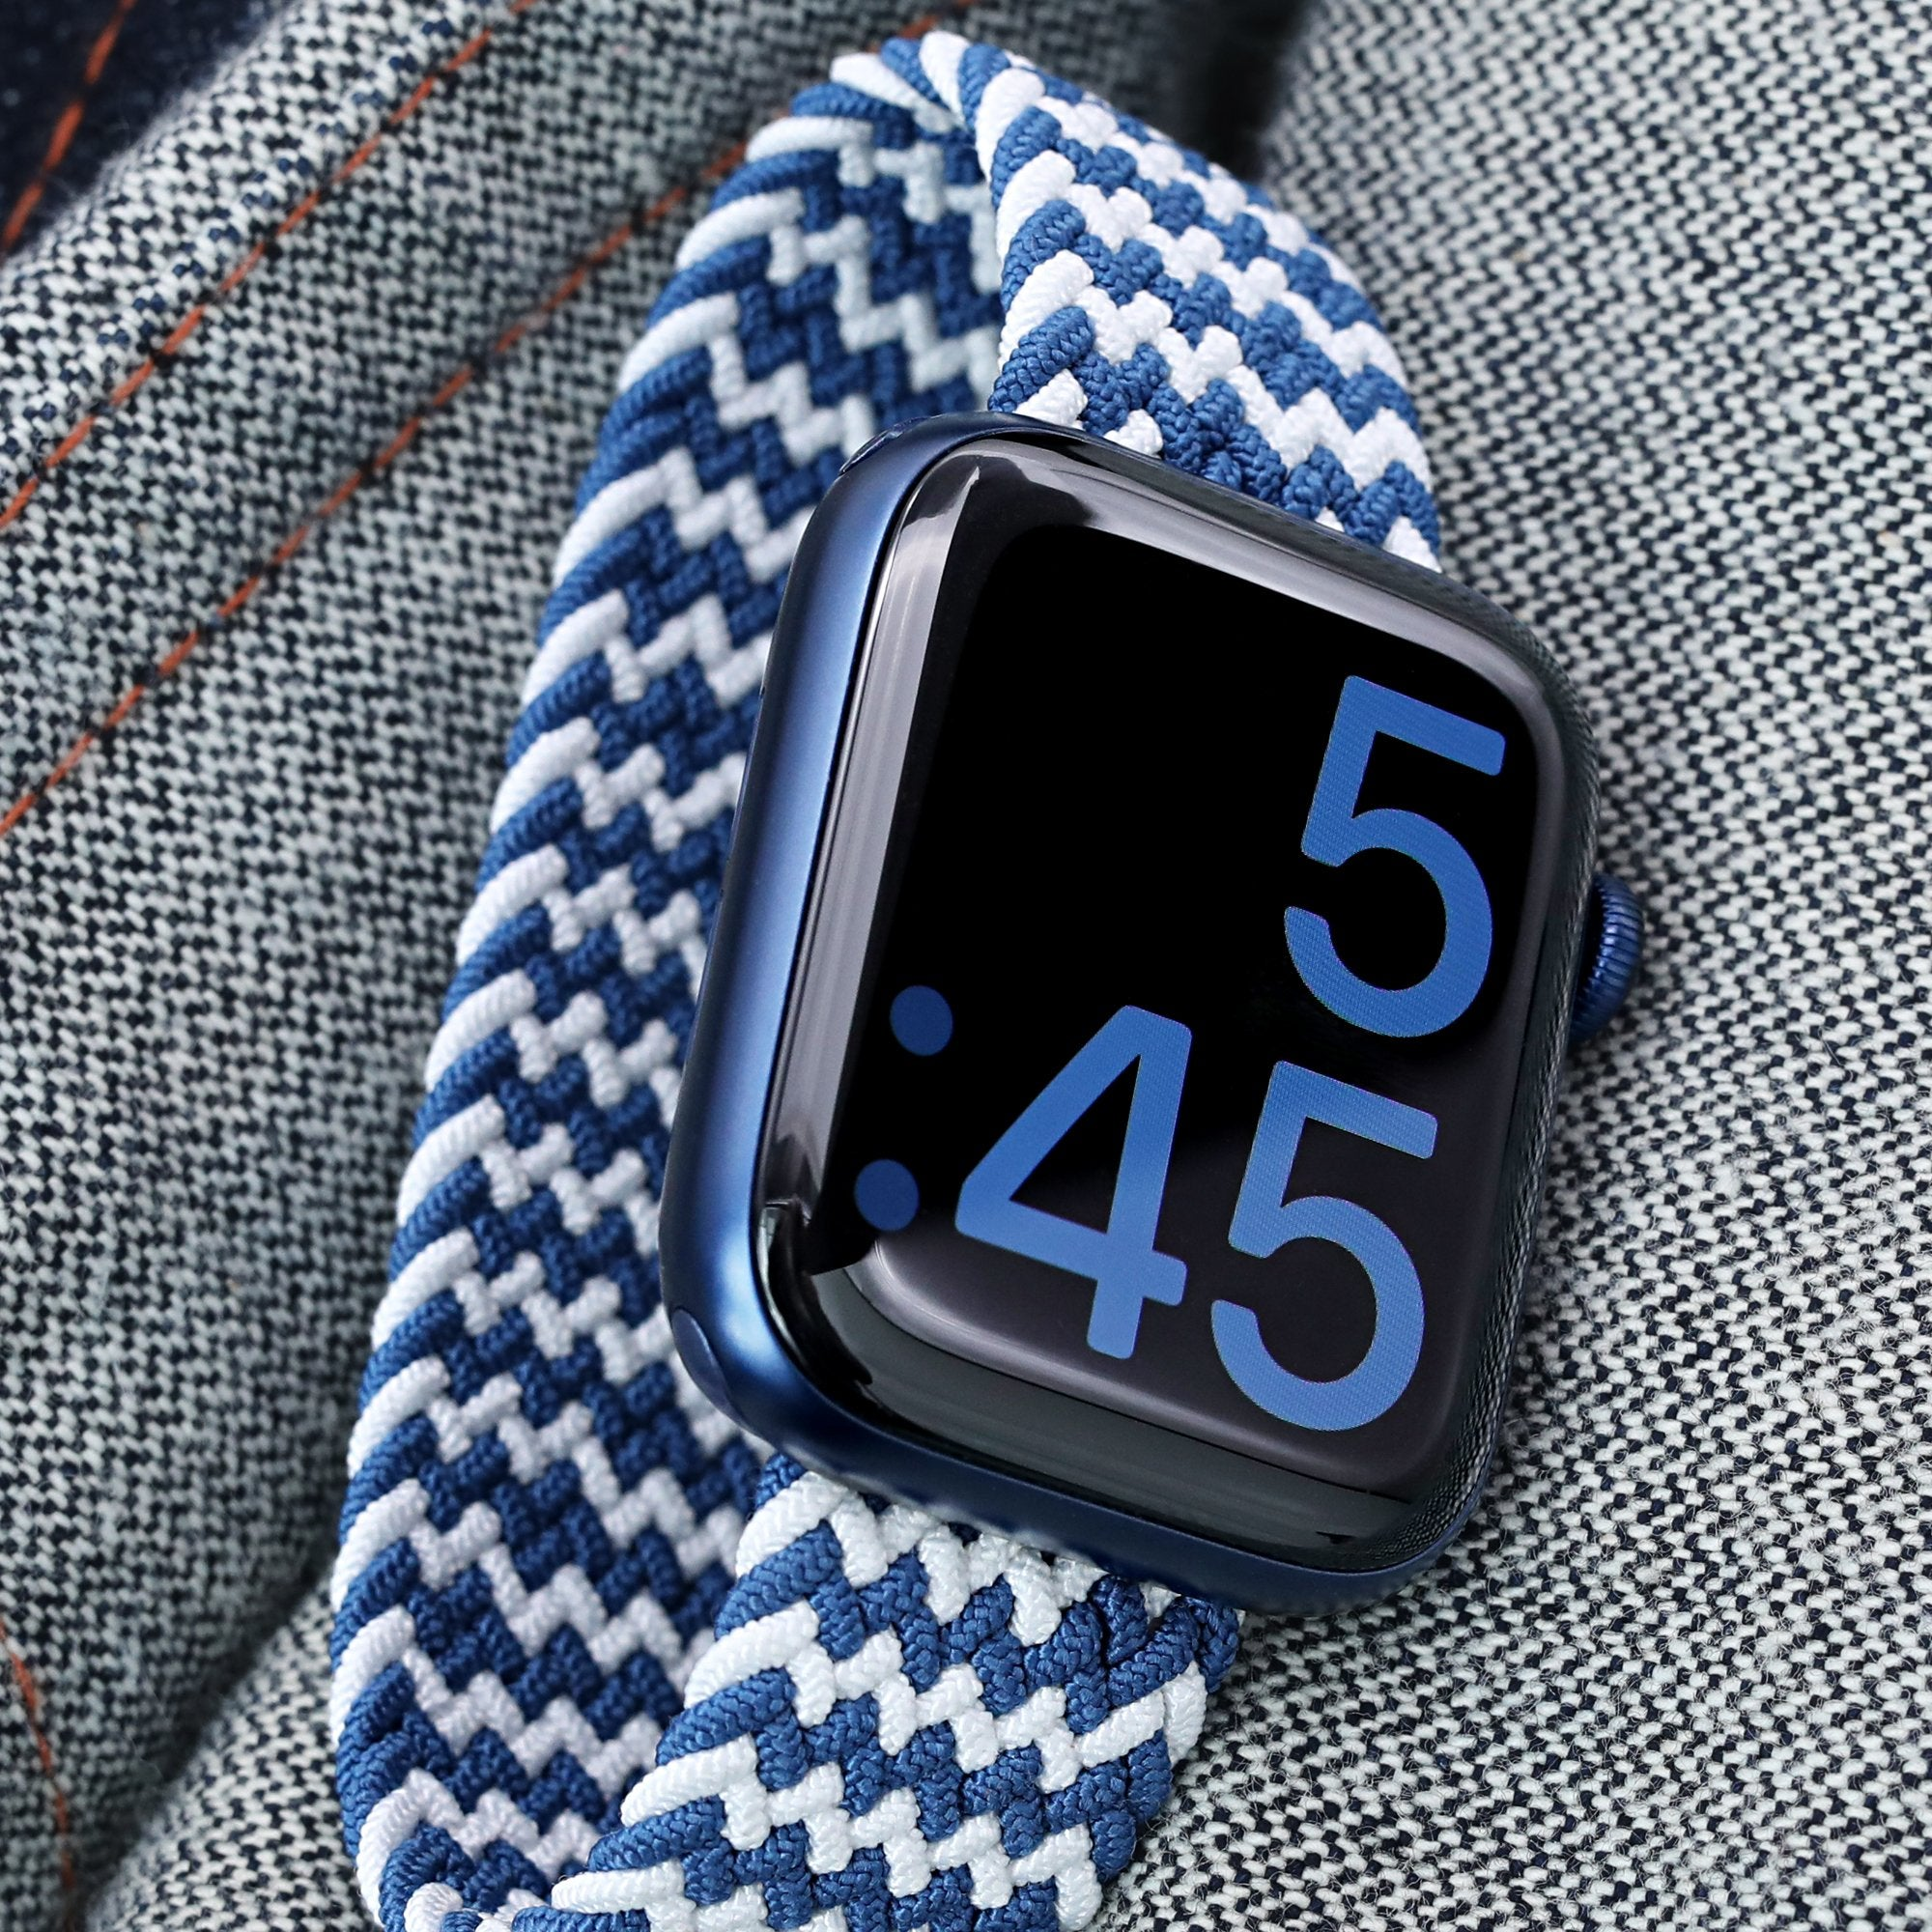 Stretchable Navy-White Solo Loop Braided Apple Watch Band for 44mm / 42mm models Strapcode Watch Bands